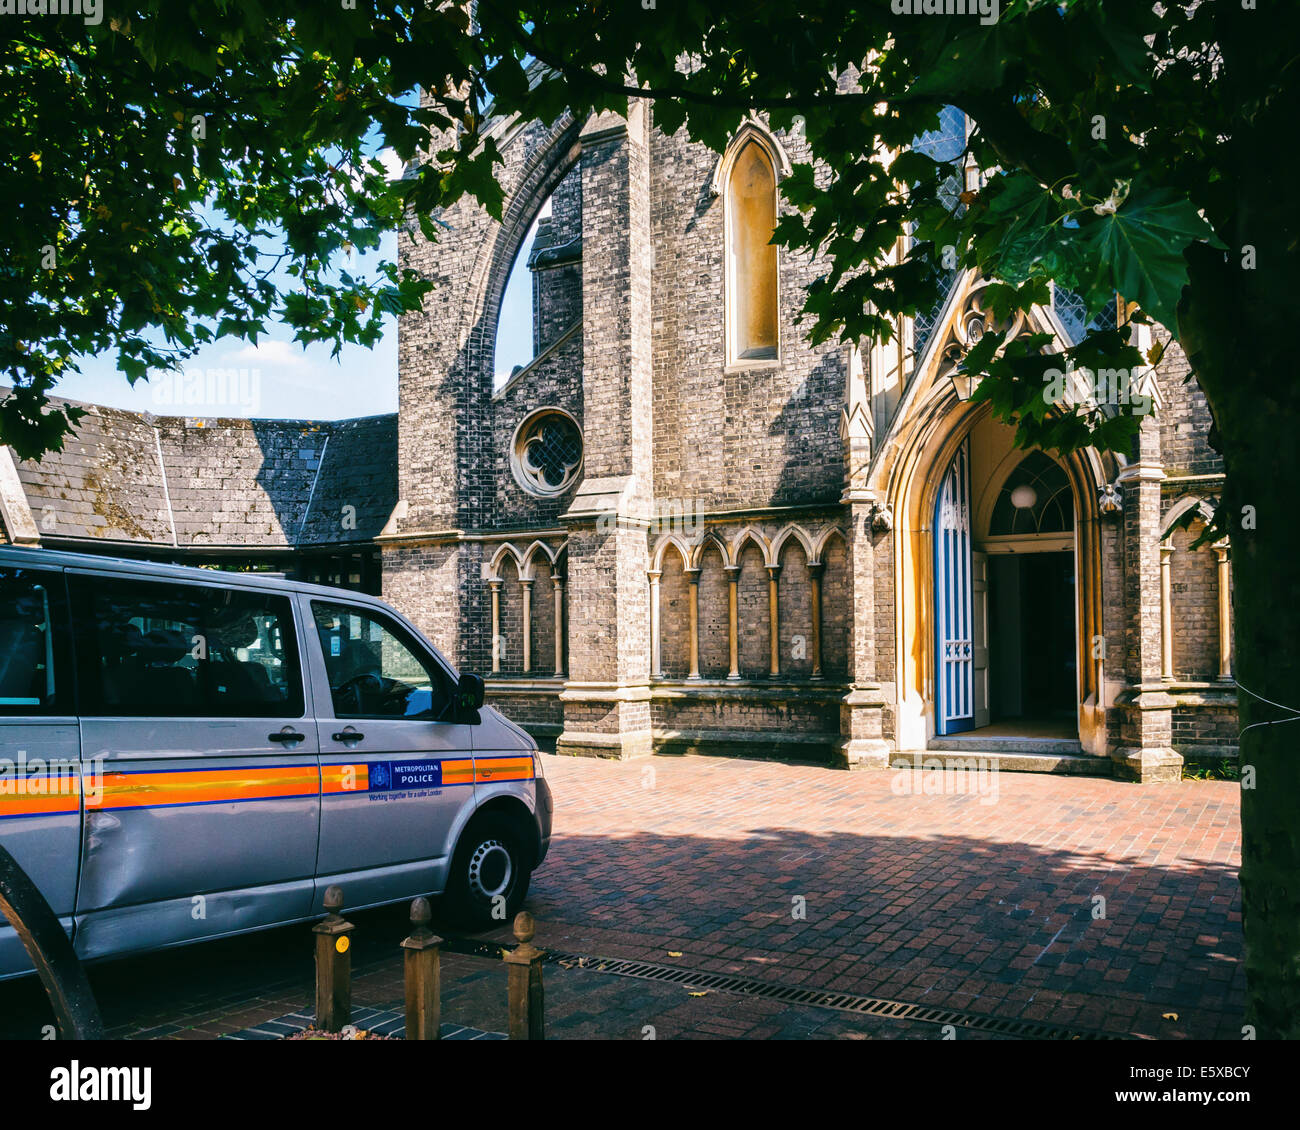 St. John the Divine Grade11 listed church in early Gothic Revival architectural style and parked police van - Richmond, - Stock Image